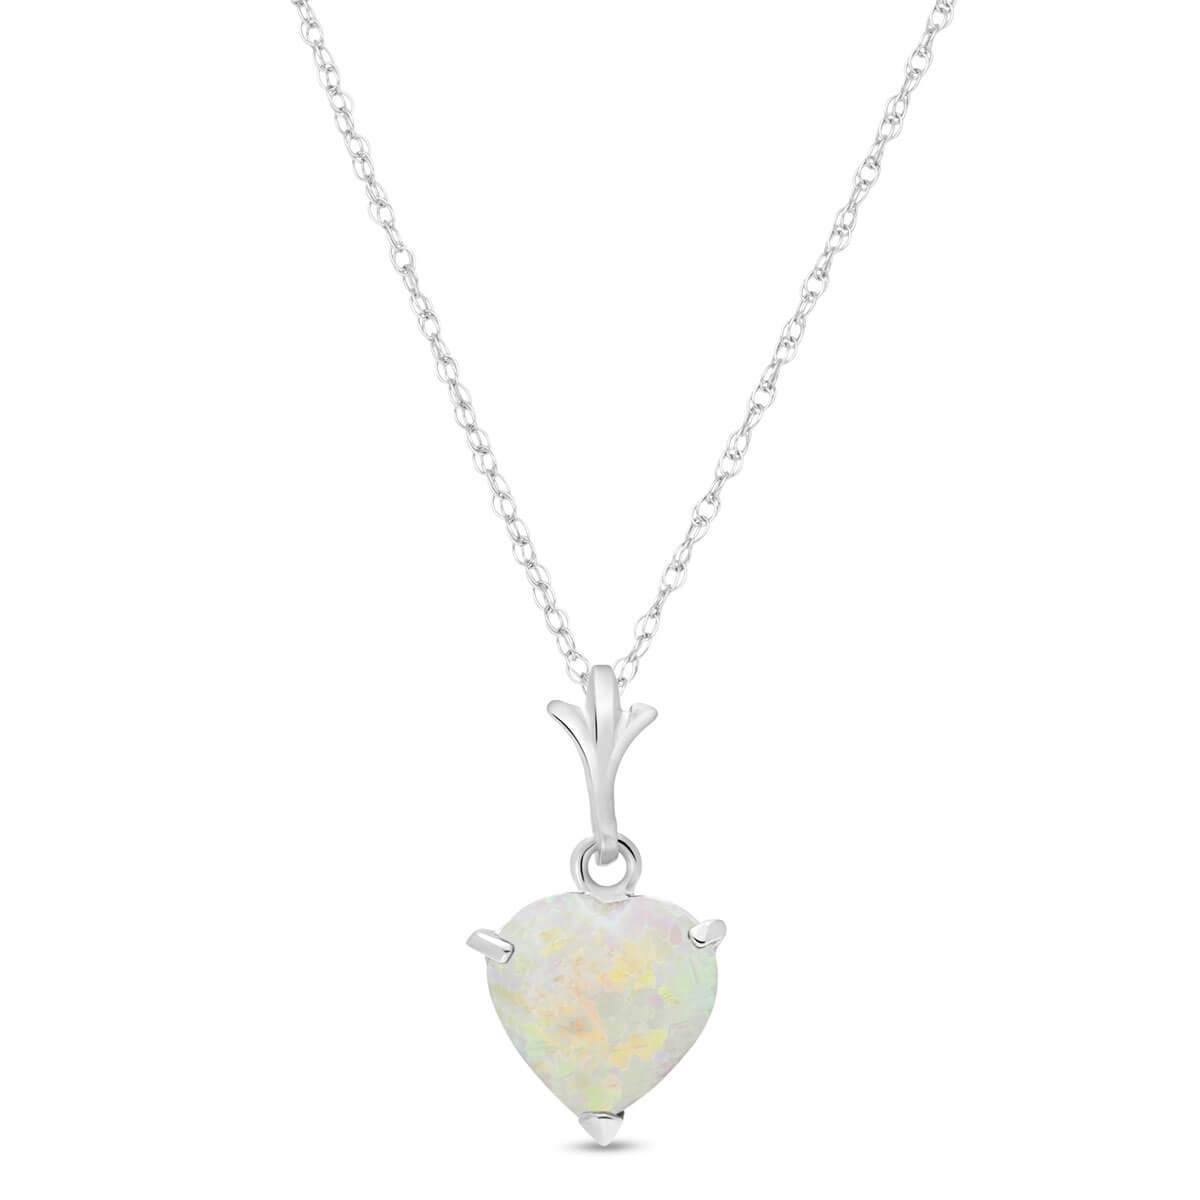 Opal Heart Pendant Necklace 0.65 ct in 9ct White Gold